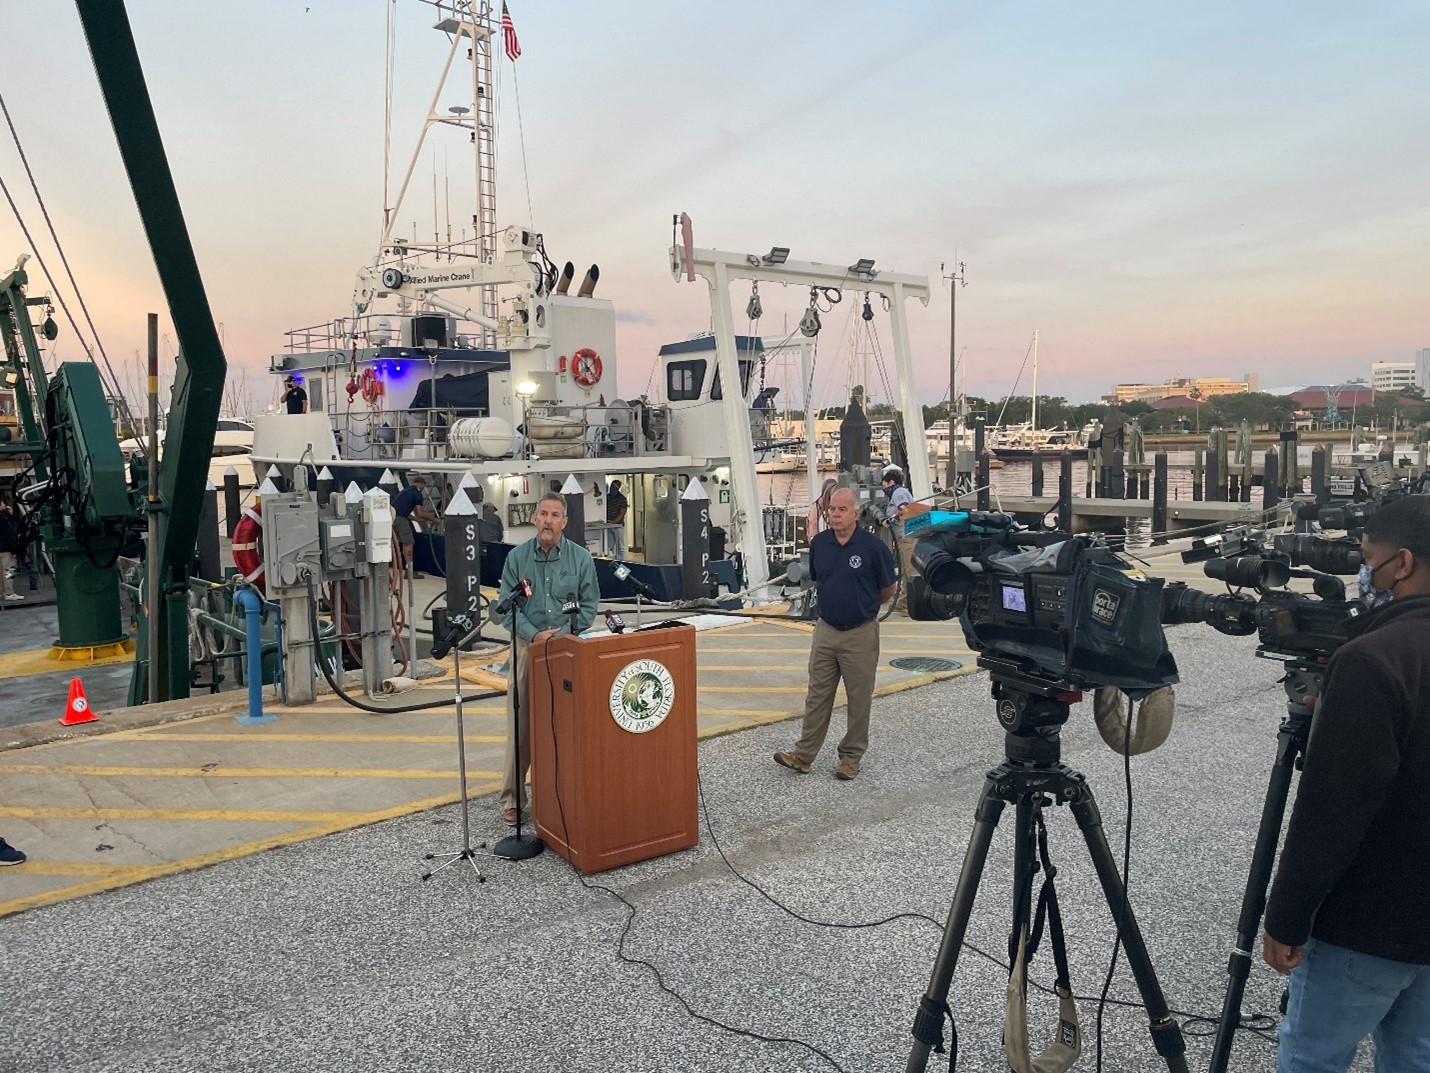 Tom Frazer, dean of the USF College of Marine Science, and Monty Graham, Director of FIO, spoke at a press event held before the R/V Weatherbird departed on the first research sampling effort in response to Piney Point.